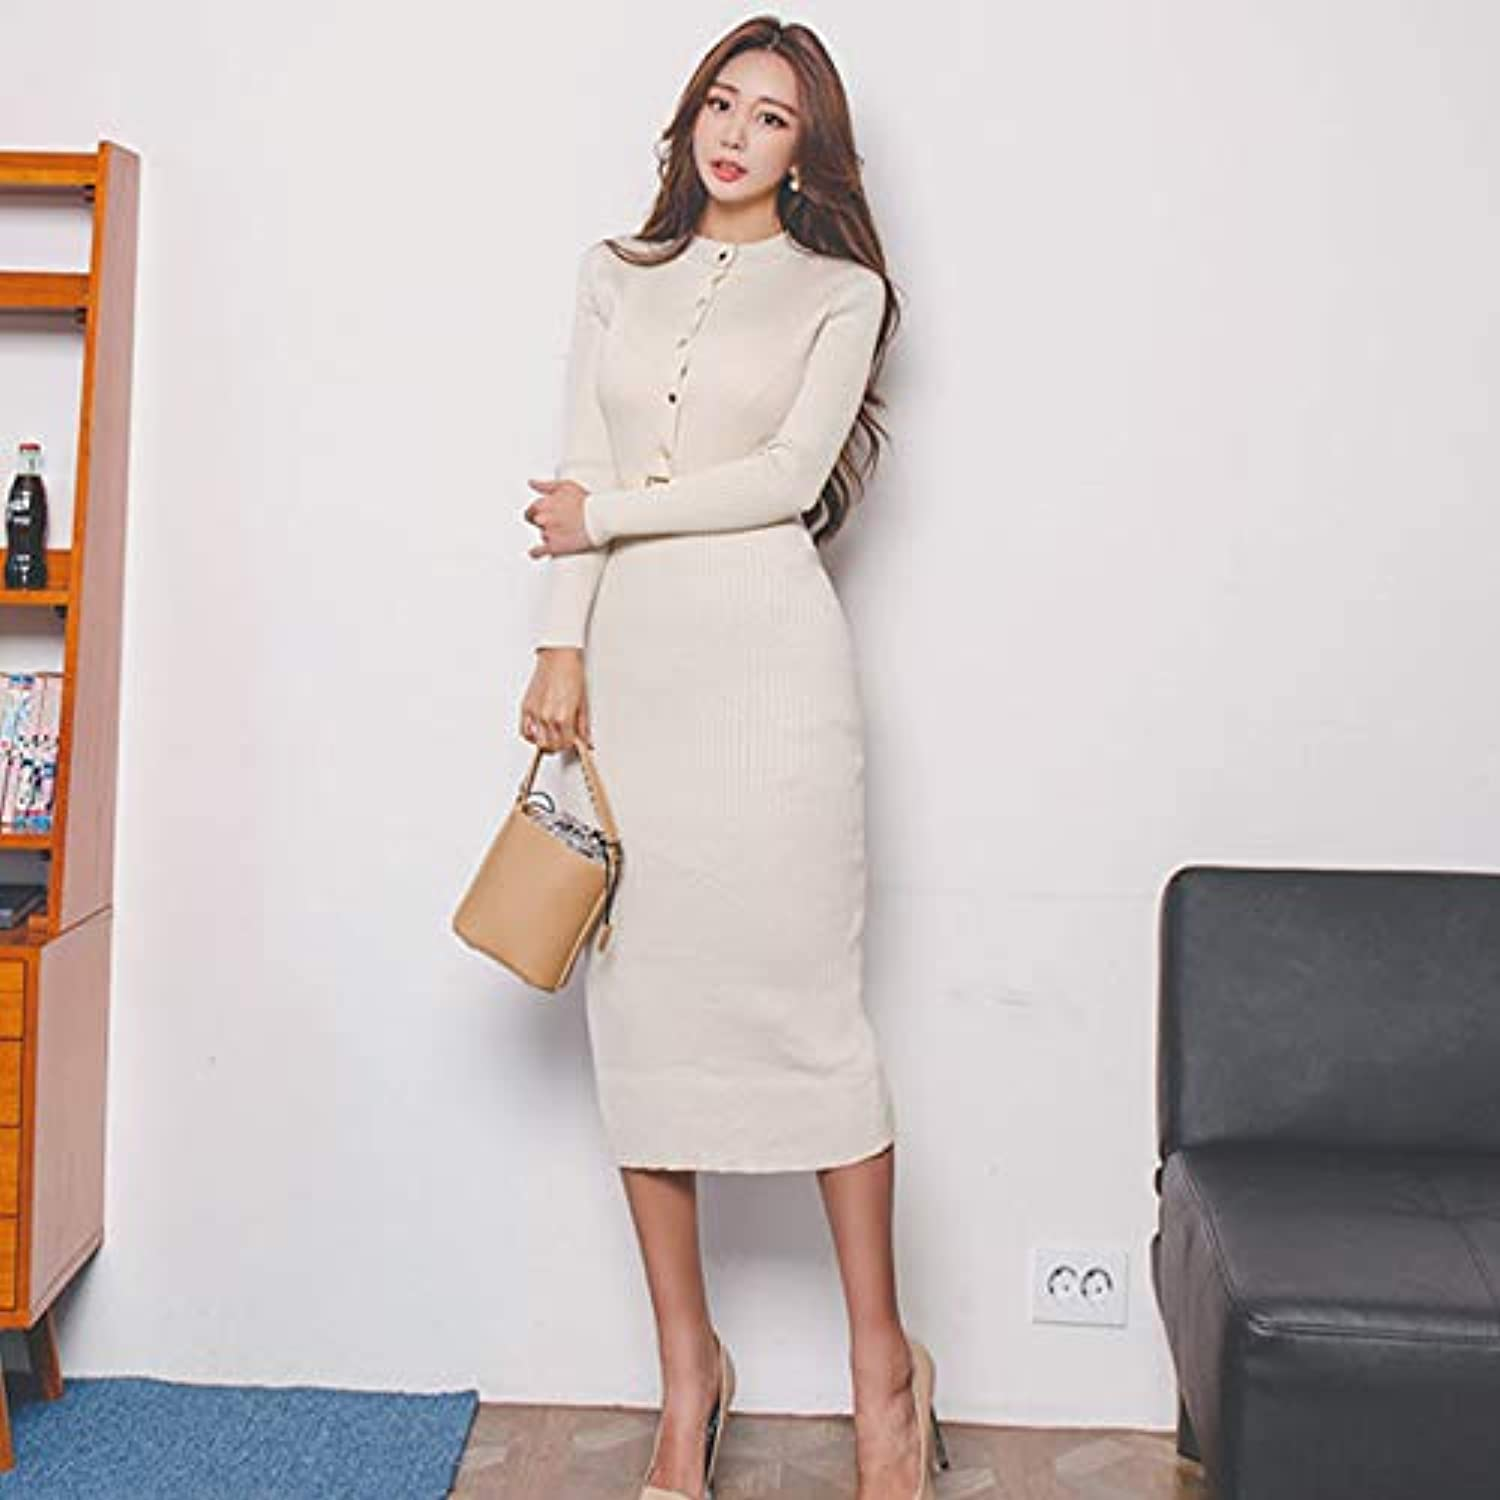 Cxlyq Dresses Elegant Single Breasted Women Sweater Dress ONeck Full Sleeve Sashes Stretch Vestidos Female KneeLength Knitted Dress